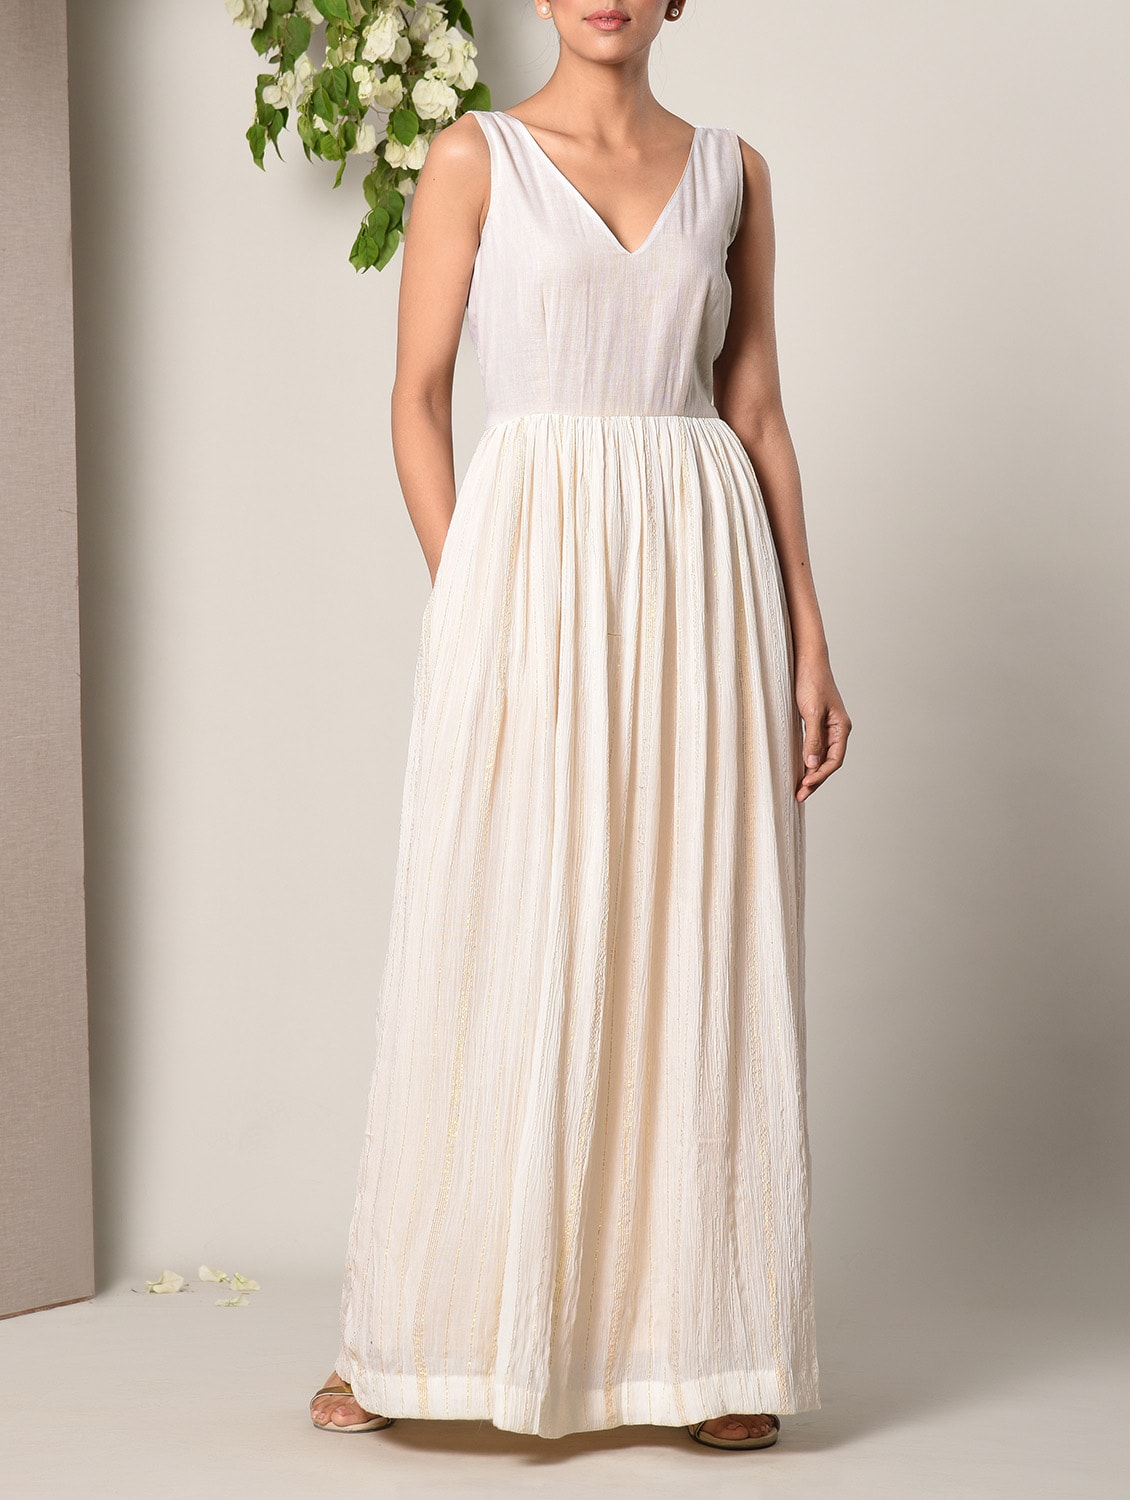 adefb9a84710 Buy Off-white Cotton Maxi Dress for Women from Truebrowns for ₹2999 at 0%  off